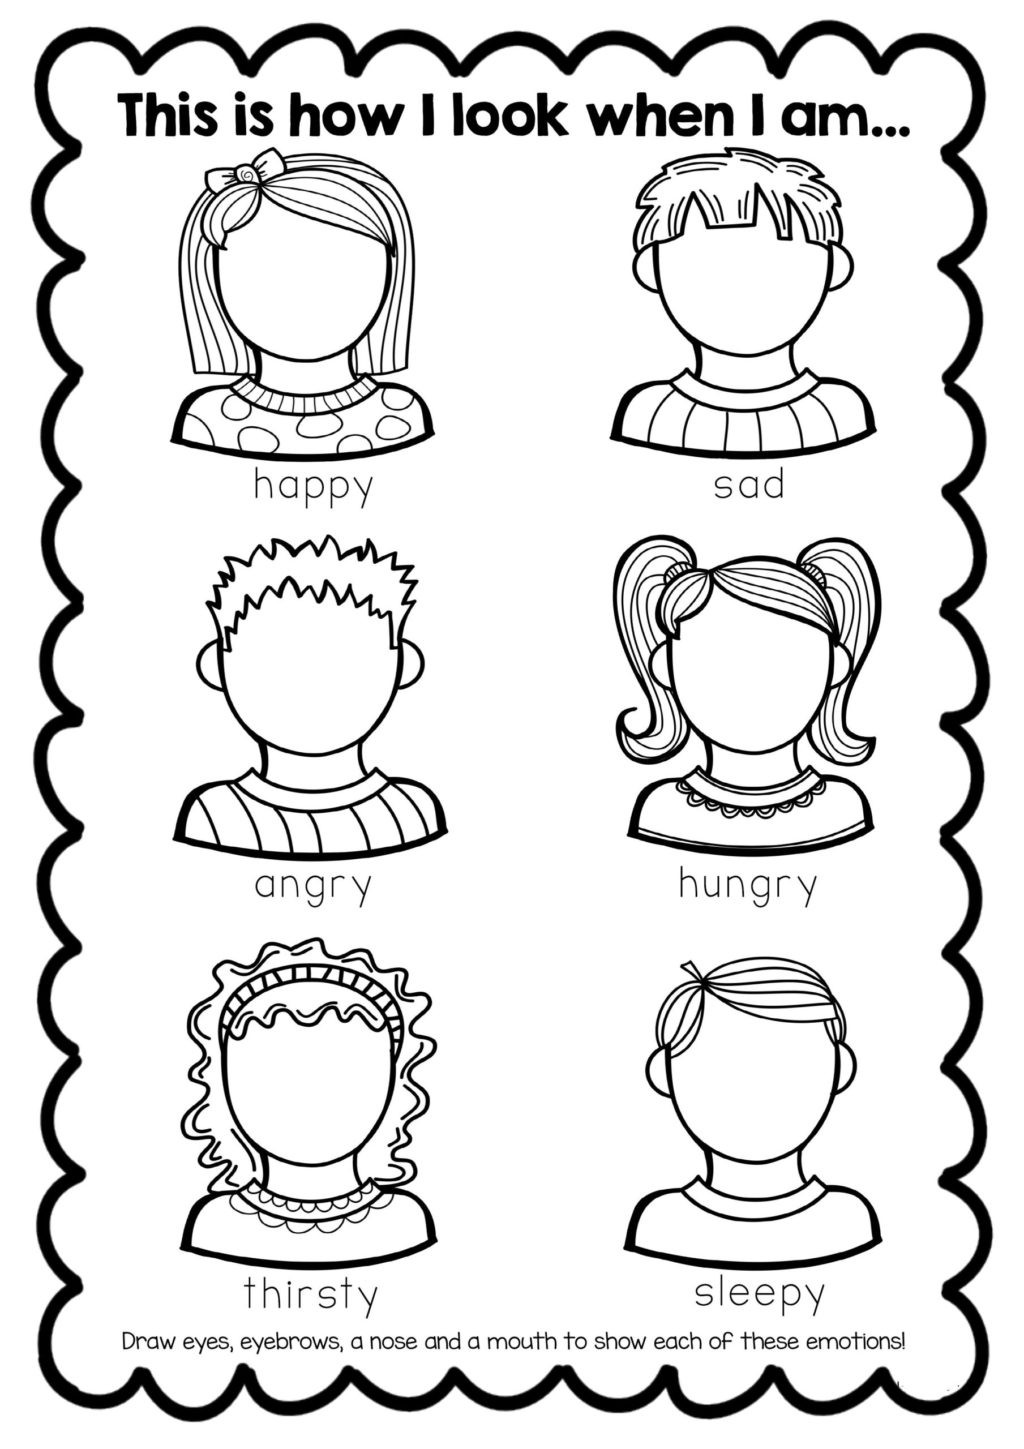 Emotions Worksheets for Preschoolers Worksheet Worksheet Kindergarten Printableksheets Math for